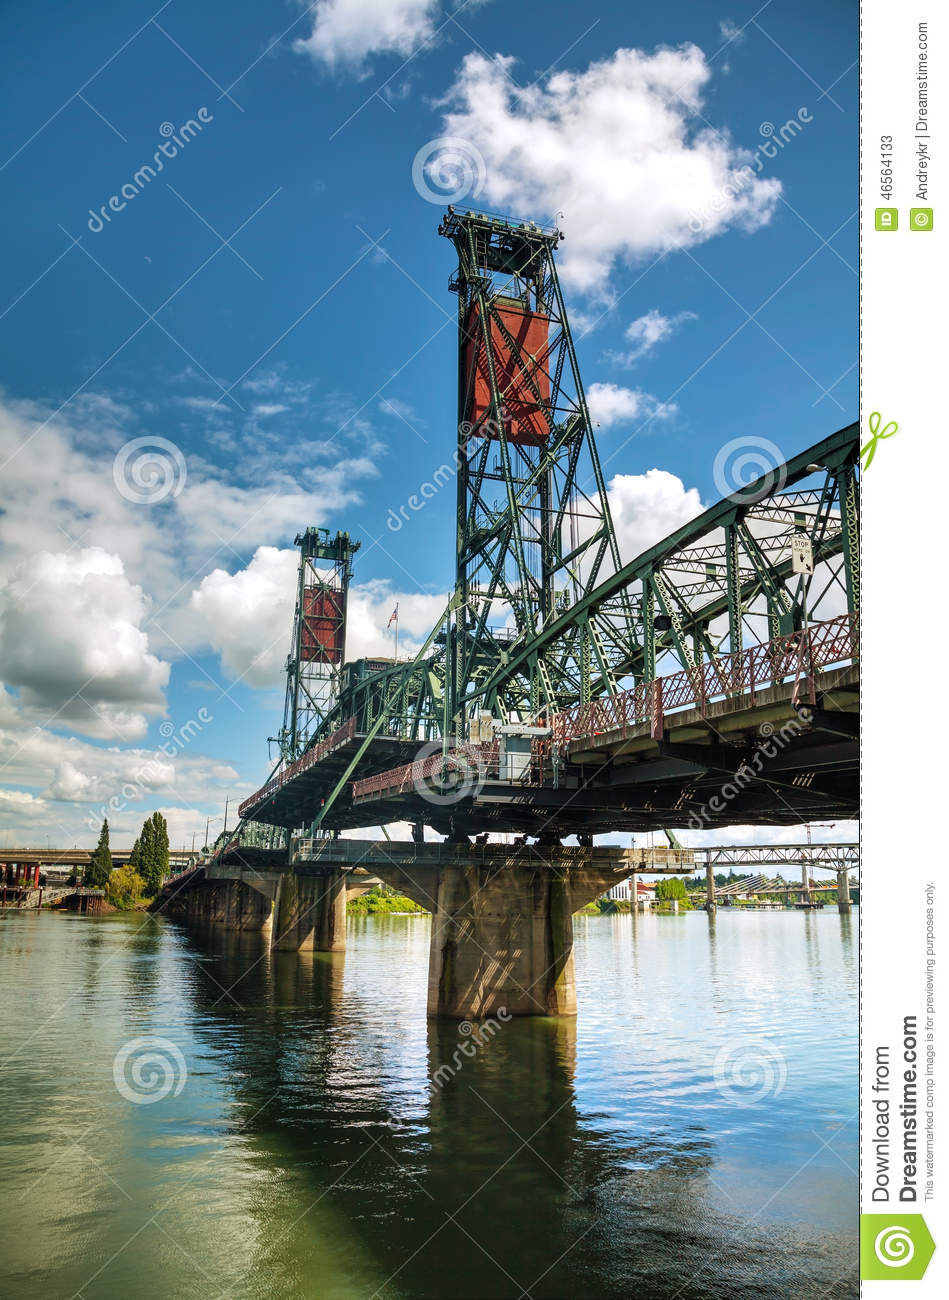 an overview of portland As of june, 2018, average apartment rent within 10 miles of portland, or is $1597 one bedroom apartments in portland rent for $1488 a month on average and two bedroom apartment rents average $1788.